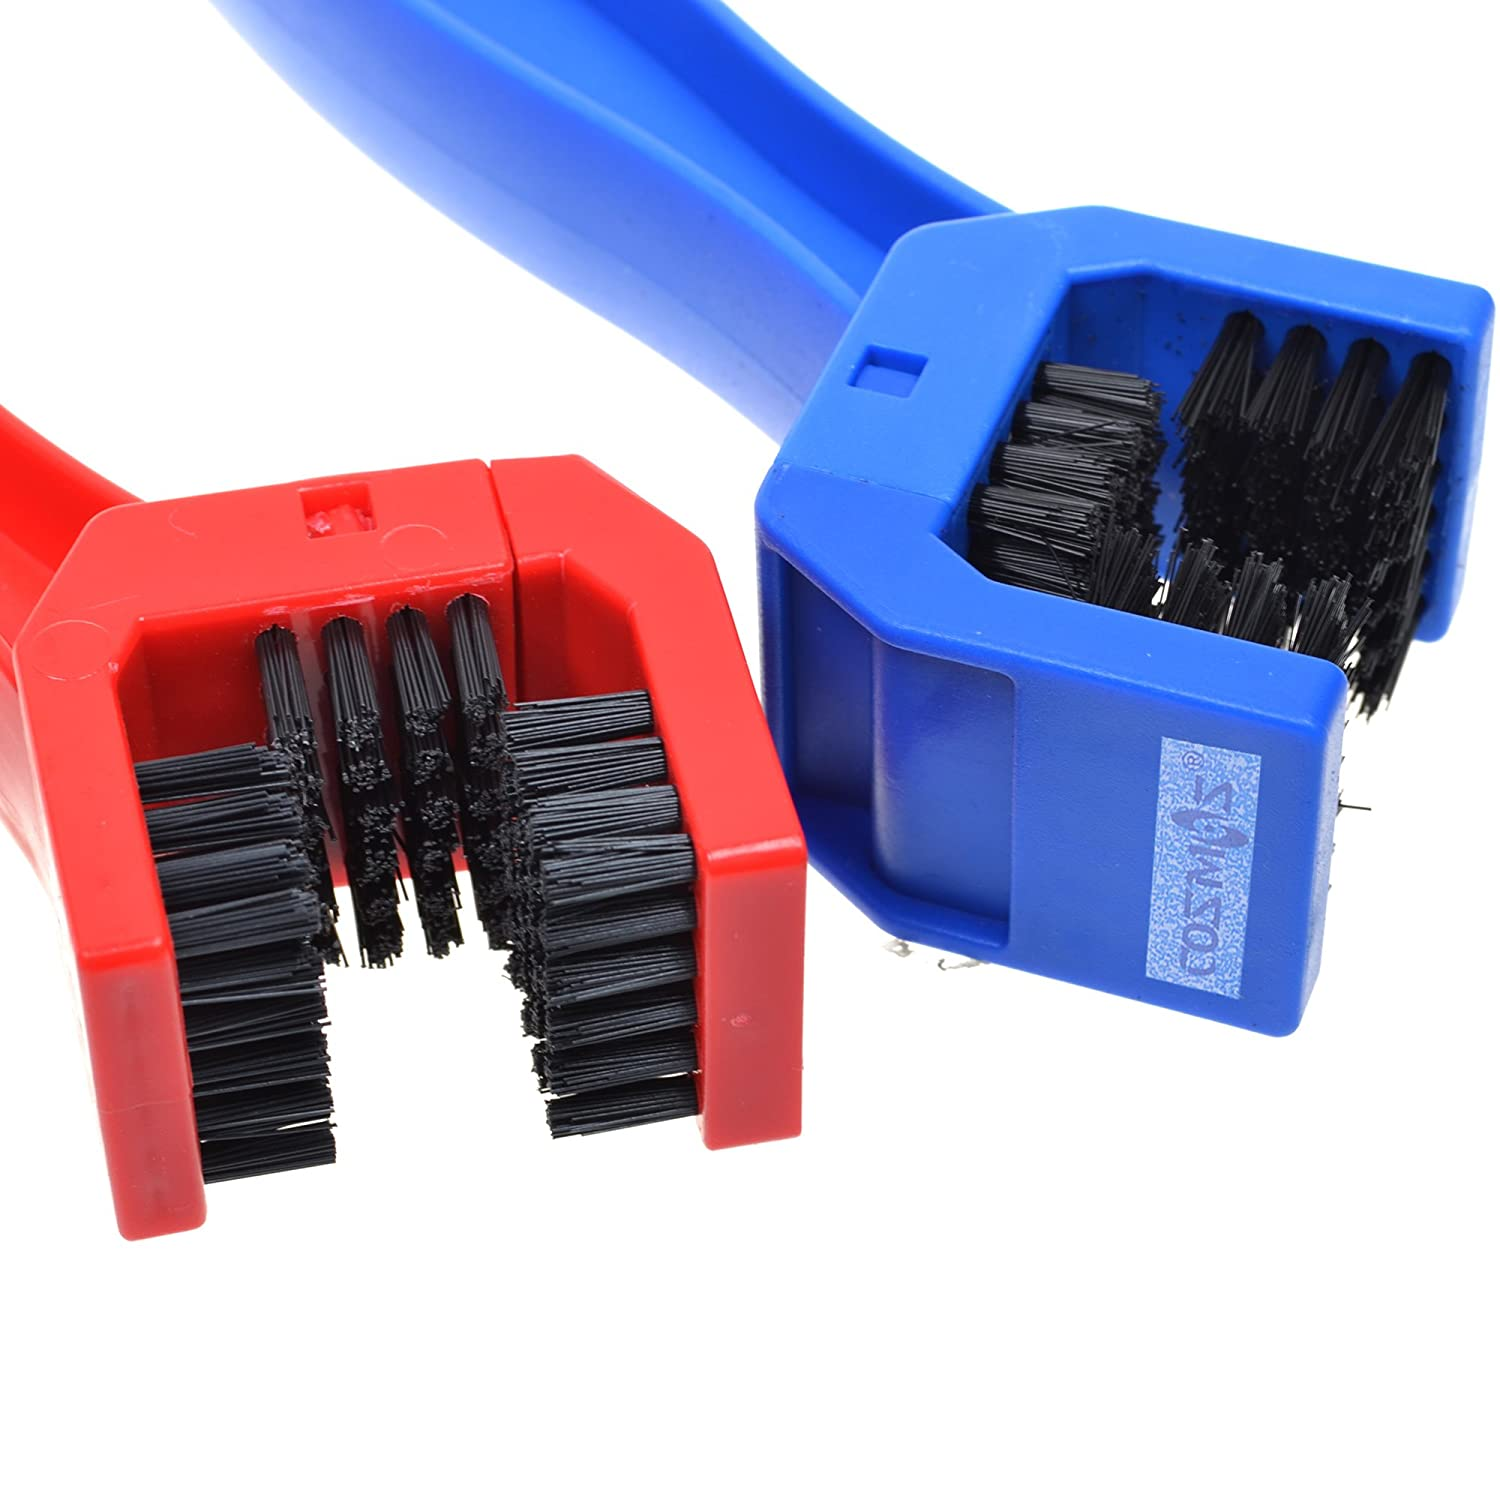 COSMOS 2 Pcs Bike Bicycle Chain Washer Cleaner Cleaning Brush . Blue and Red Color